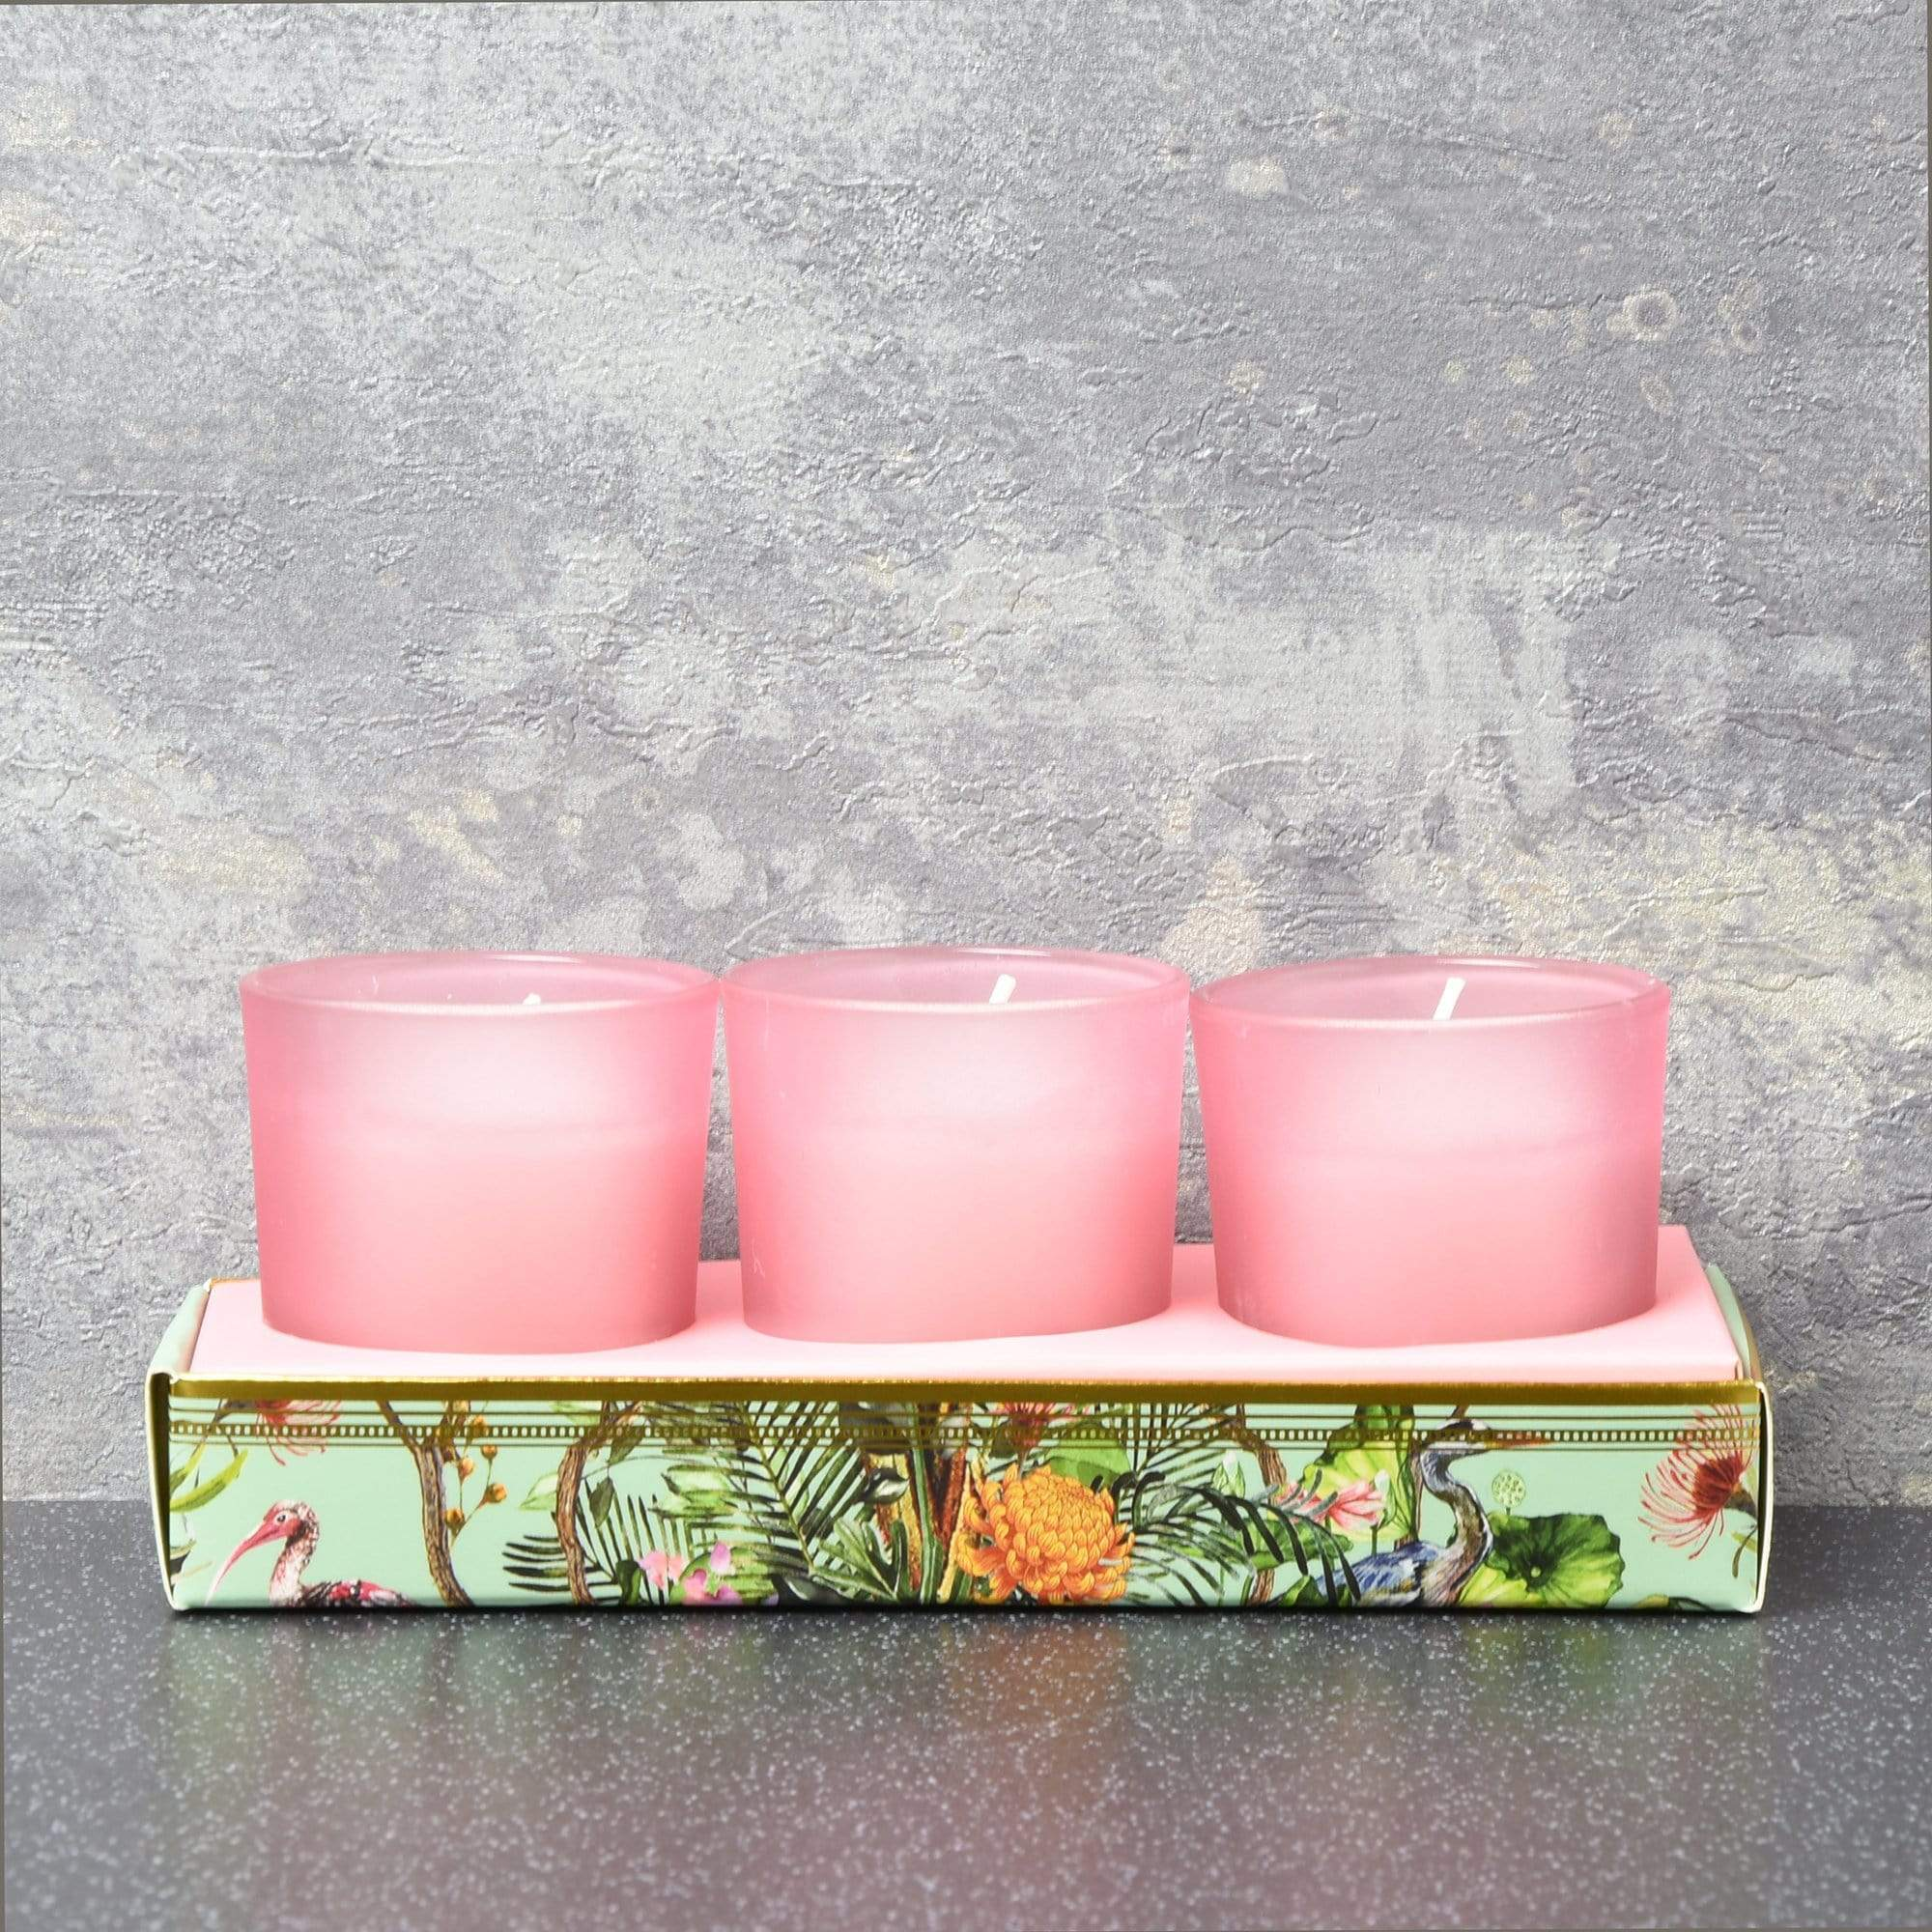 Candlelight Home Candle Candlelight Chinoiserie Set of 3 Wax Filled Candle Pots Aromatic Shea Scent 50g 6PK